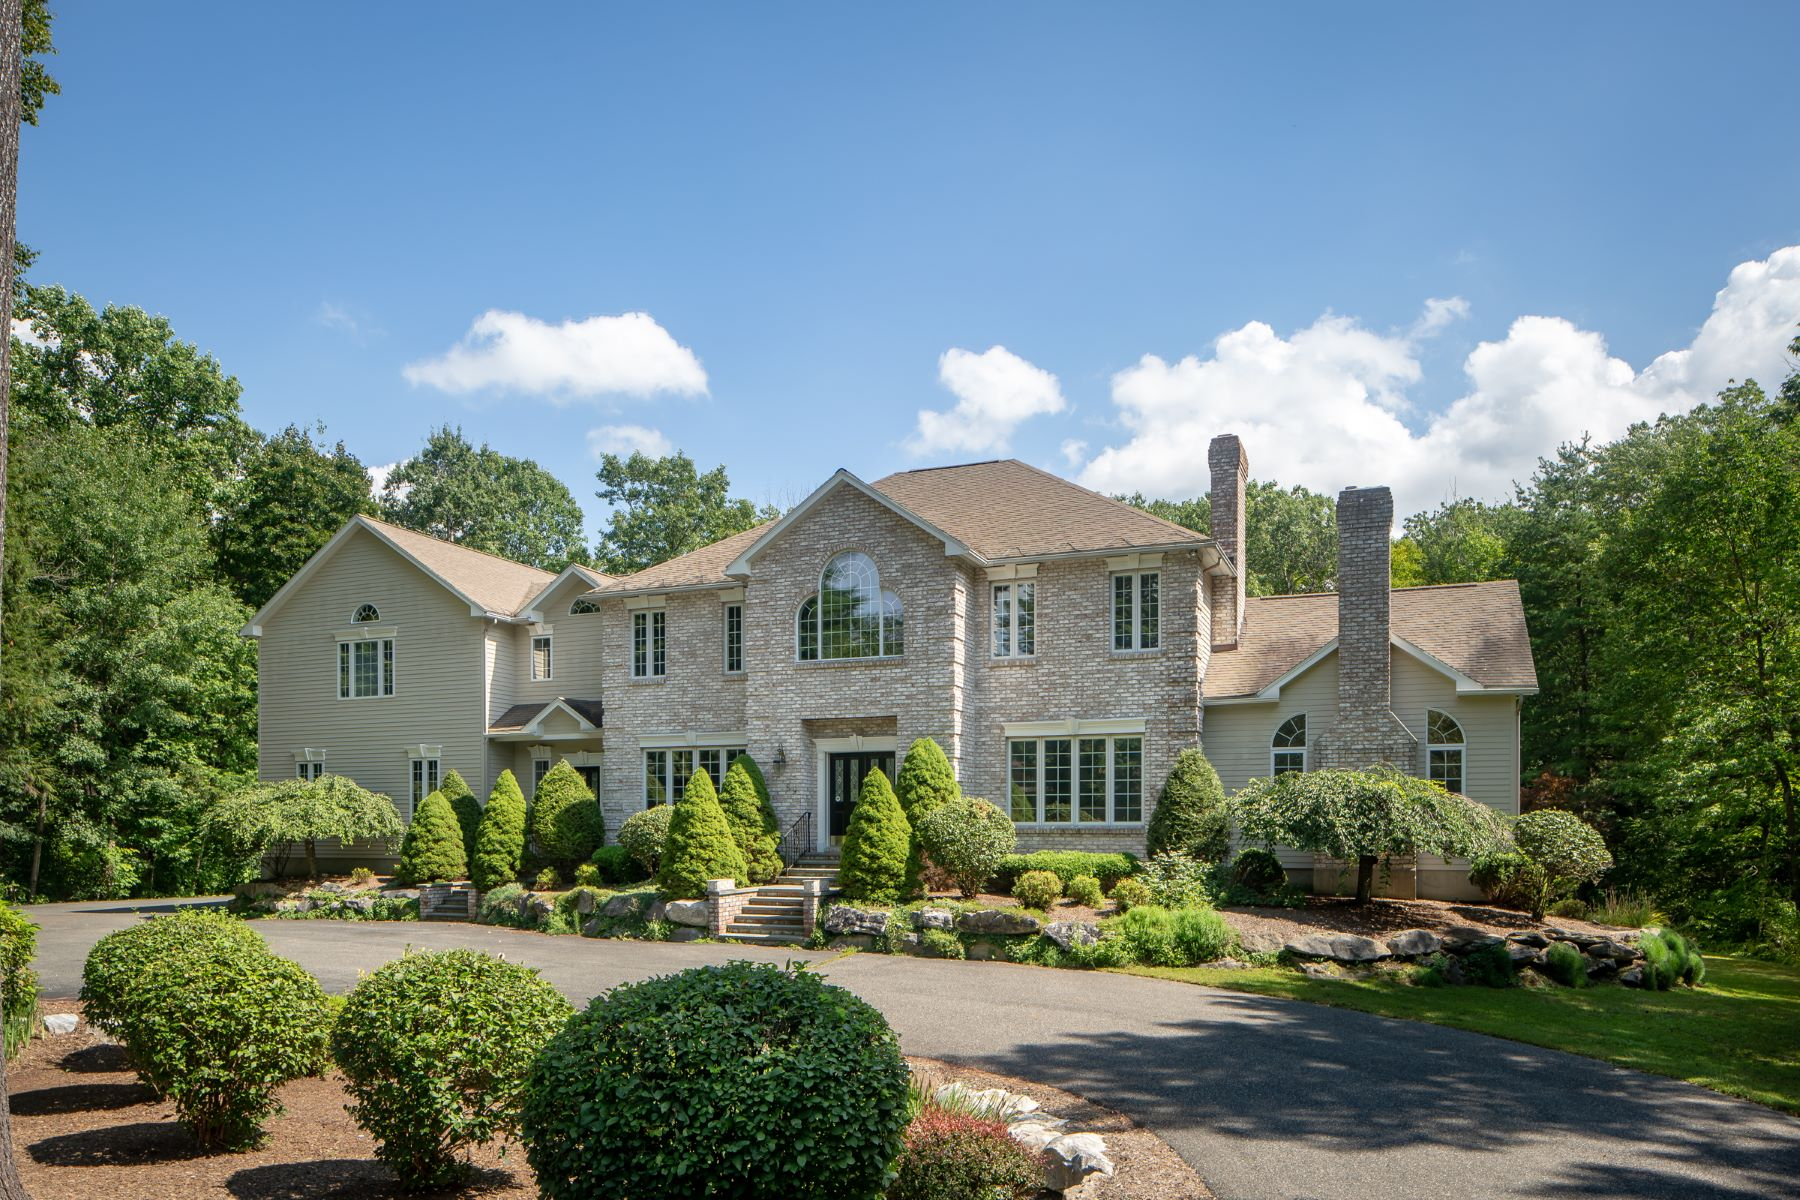 Single Family Homes for Sale at Grand Contemporary with Pool 89 Dunmore Ct Lenox, Massachusetts 01240 United States